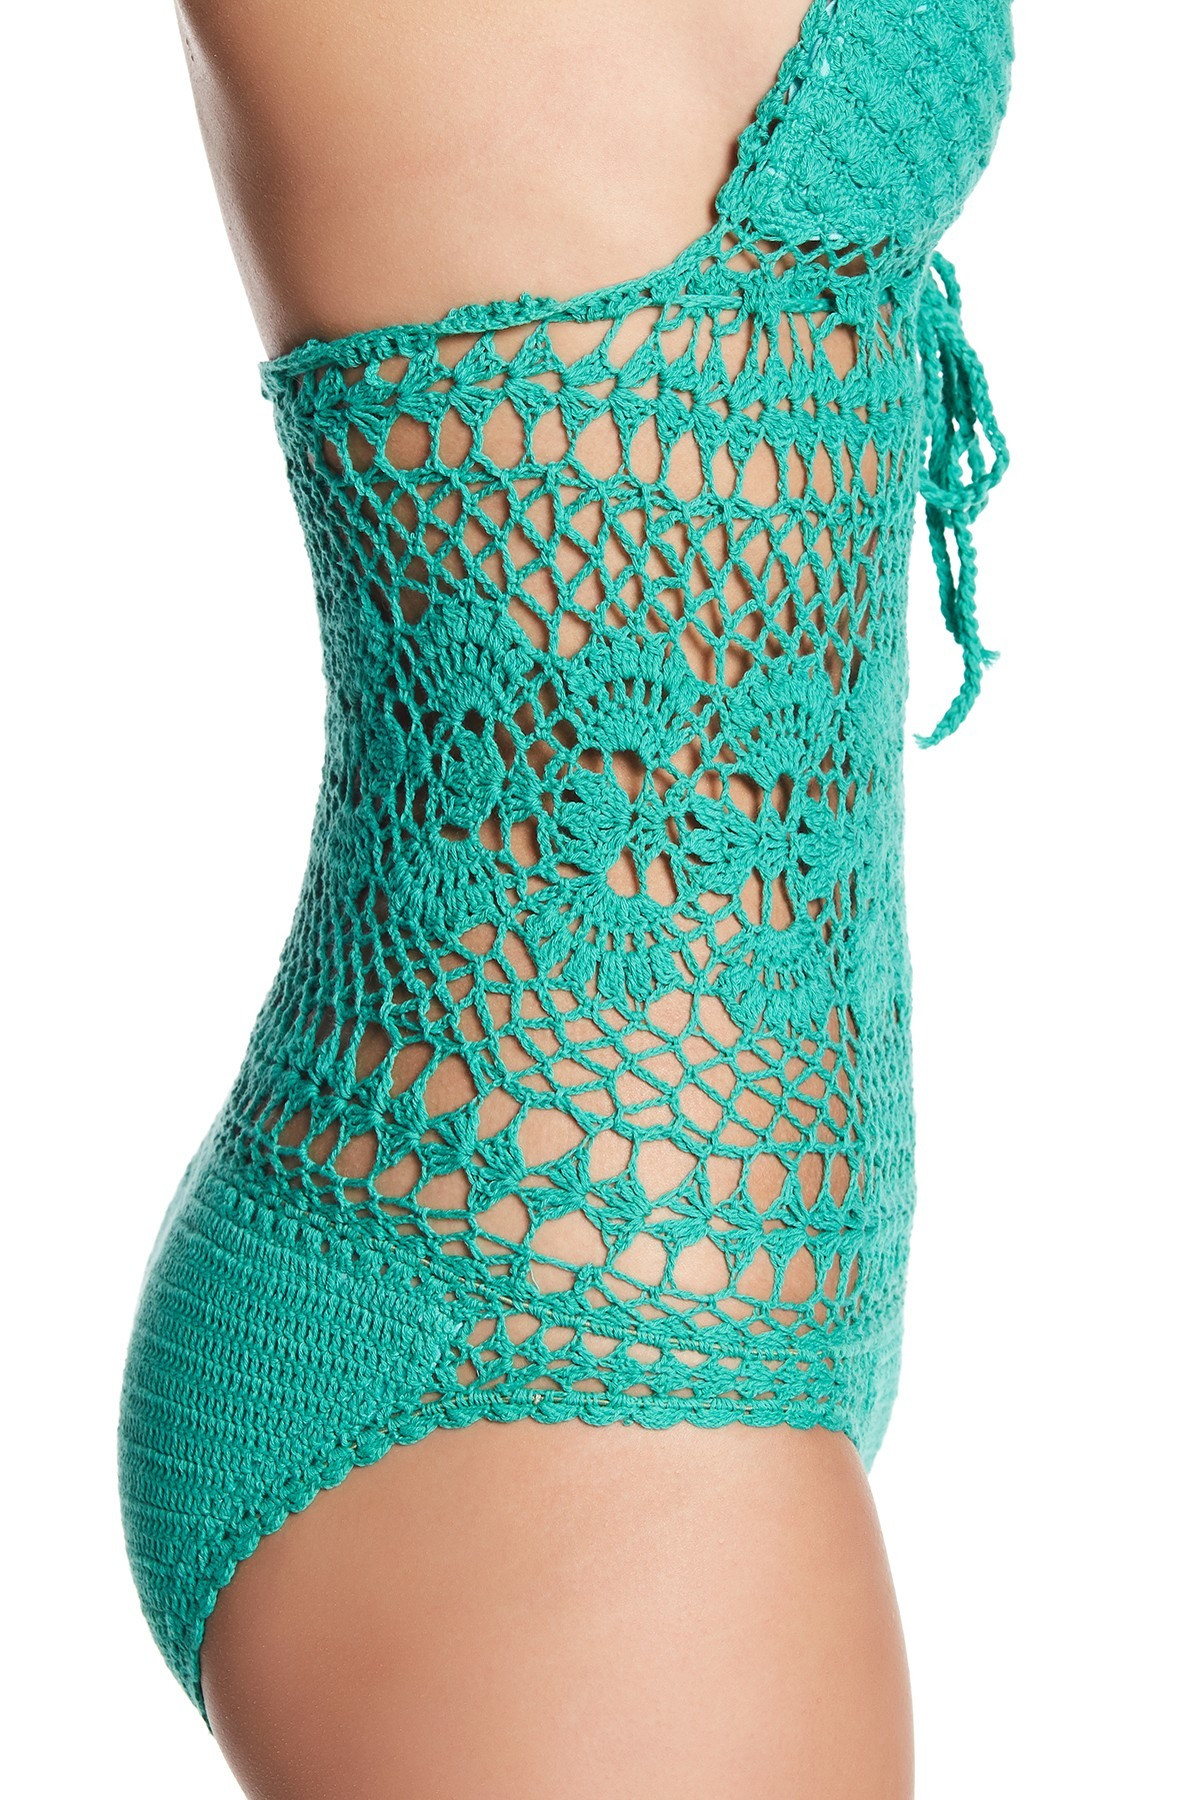 Crochet One Piece Swimsuit Lovely Beauty and the Beach Of Superb 49 Pics Crochet One Piece Swimsuit